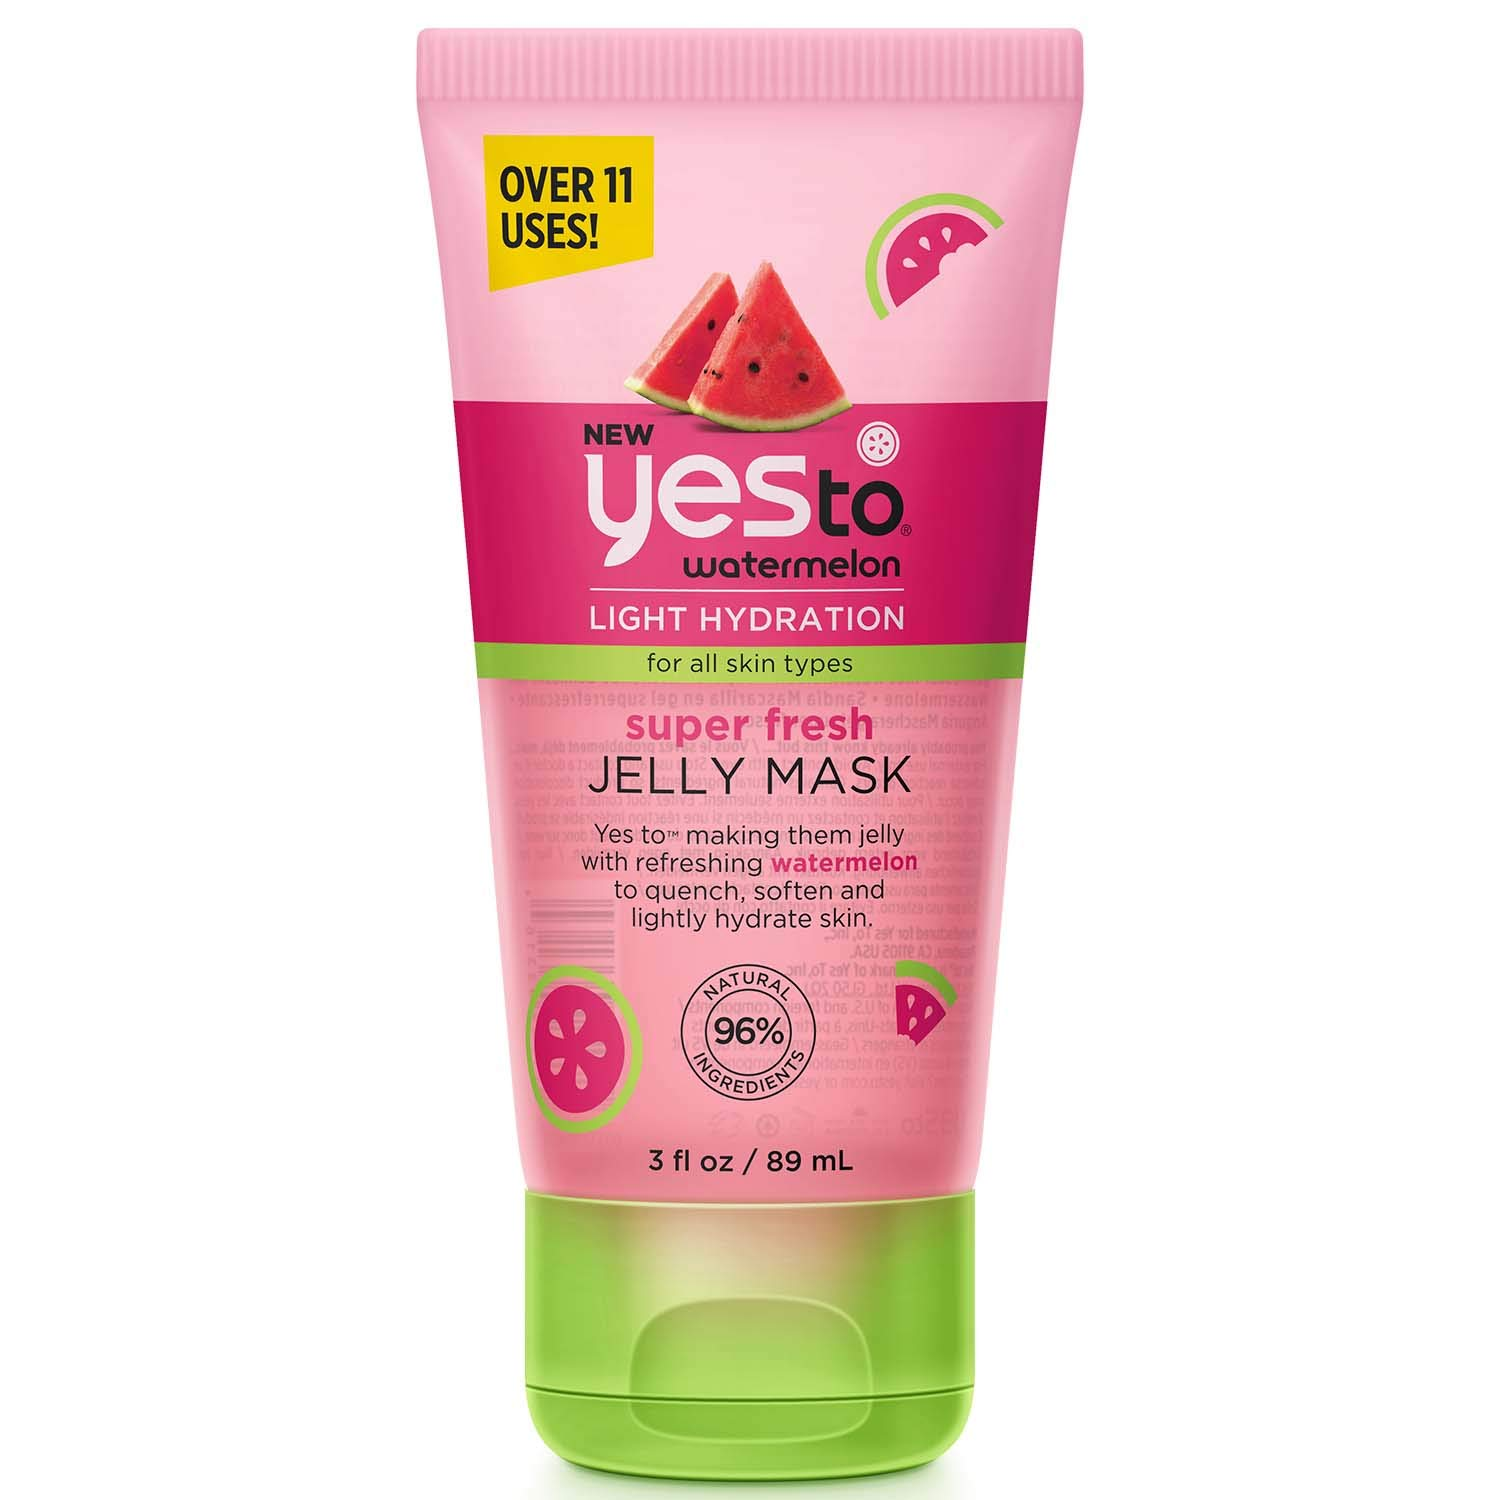 Yes To Watermelon Light Hydration Super Fresh Jelly Mask for All Skin Types, 3 Fluid Ounce